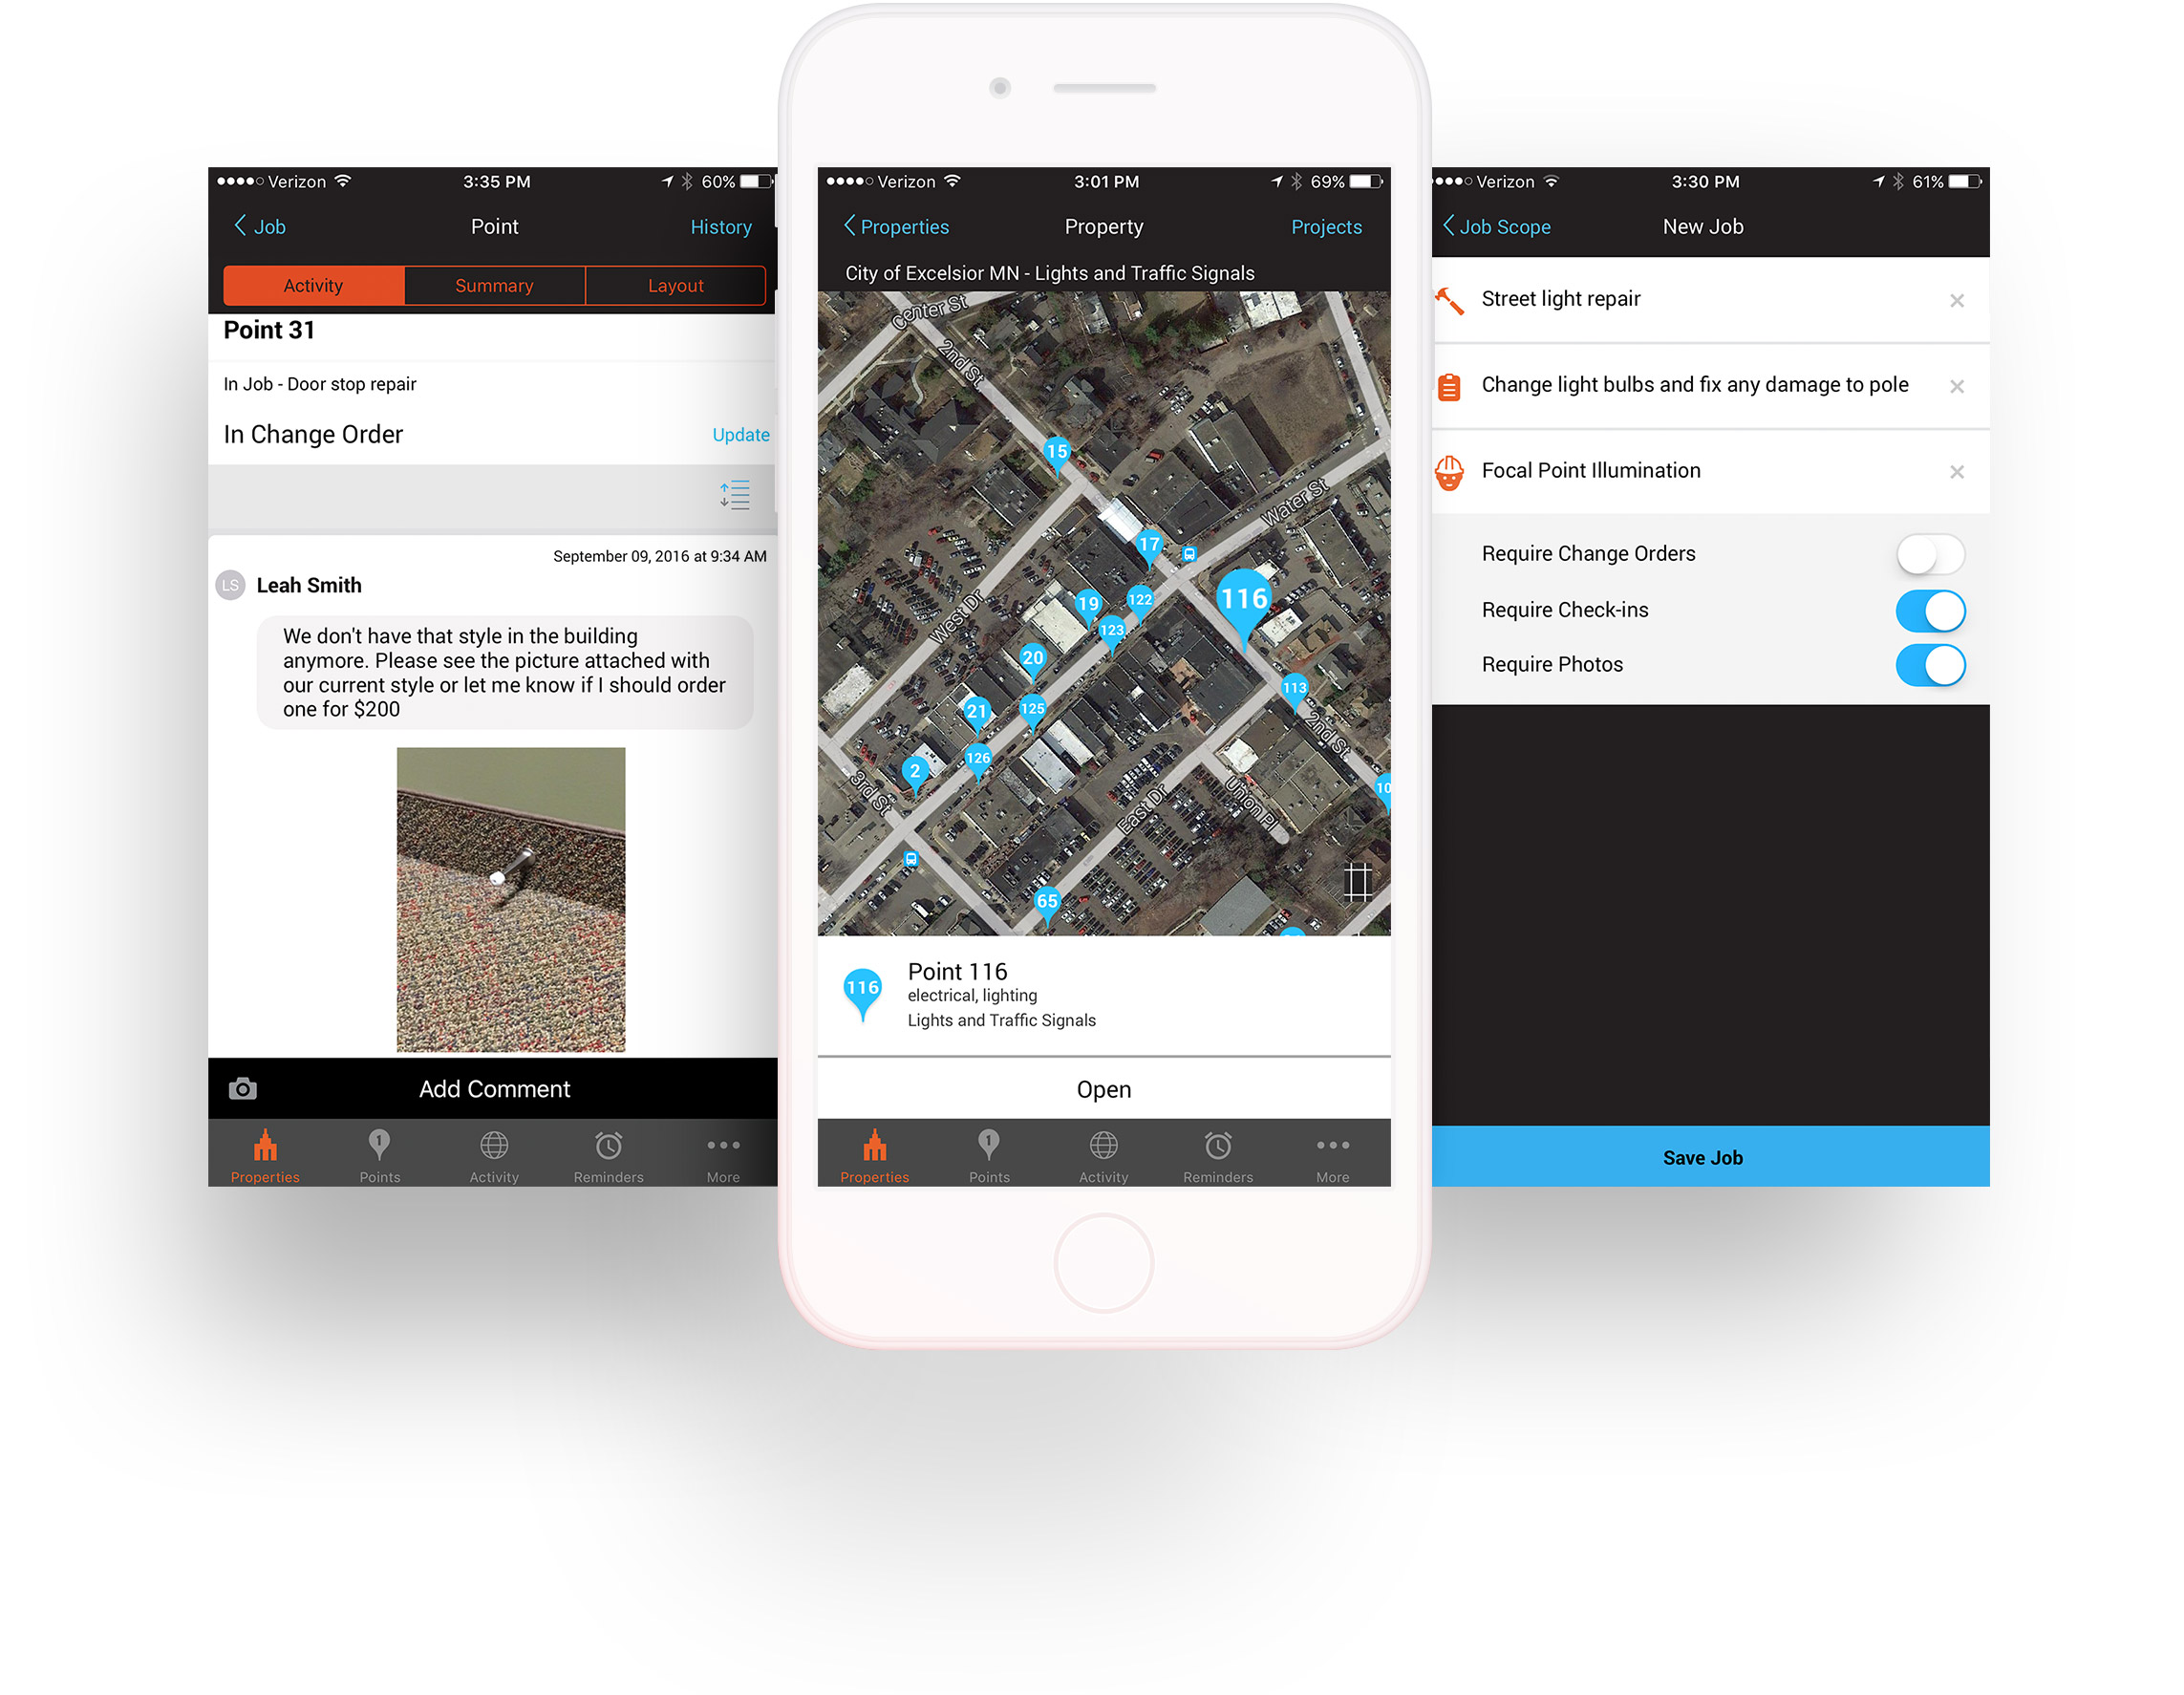 Jobs Feature - When managing jobs and vendors, you can visually track properties in One Spot. You'll also be able to assign jobs, approve change orders, request bids from multiple contractors, verify progress, and convert bids to jobs.Your team will benefit from access to geo-tagged photos and comments, maps and image layouts, property tracking, reminders, custom point lists, digital file cabinets, and flexible reporting.